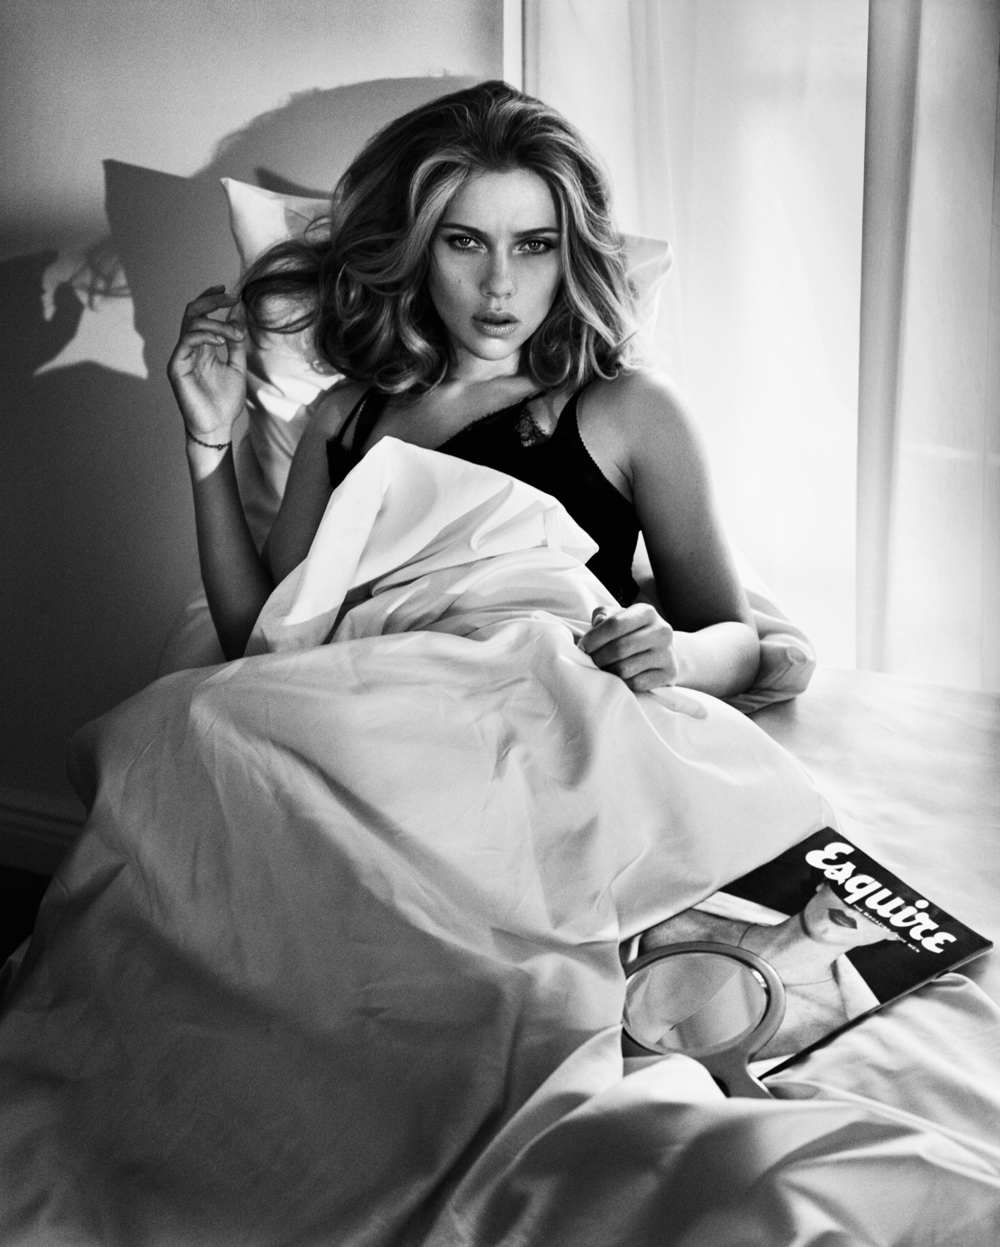 © The Light Between Us by Vincent Peters, to be published by teNeues in September 2014, € 98 - www.teneues.com.  Scarlett Johansson, Photo © 2014 Vincent Peters. All rights reserved.